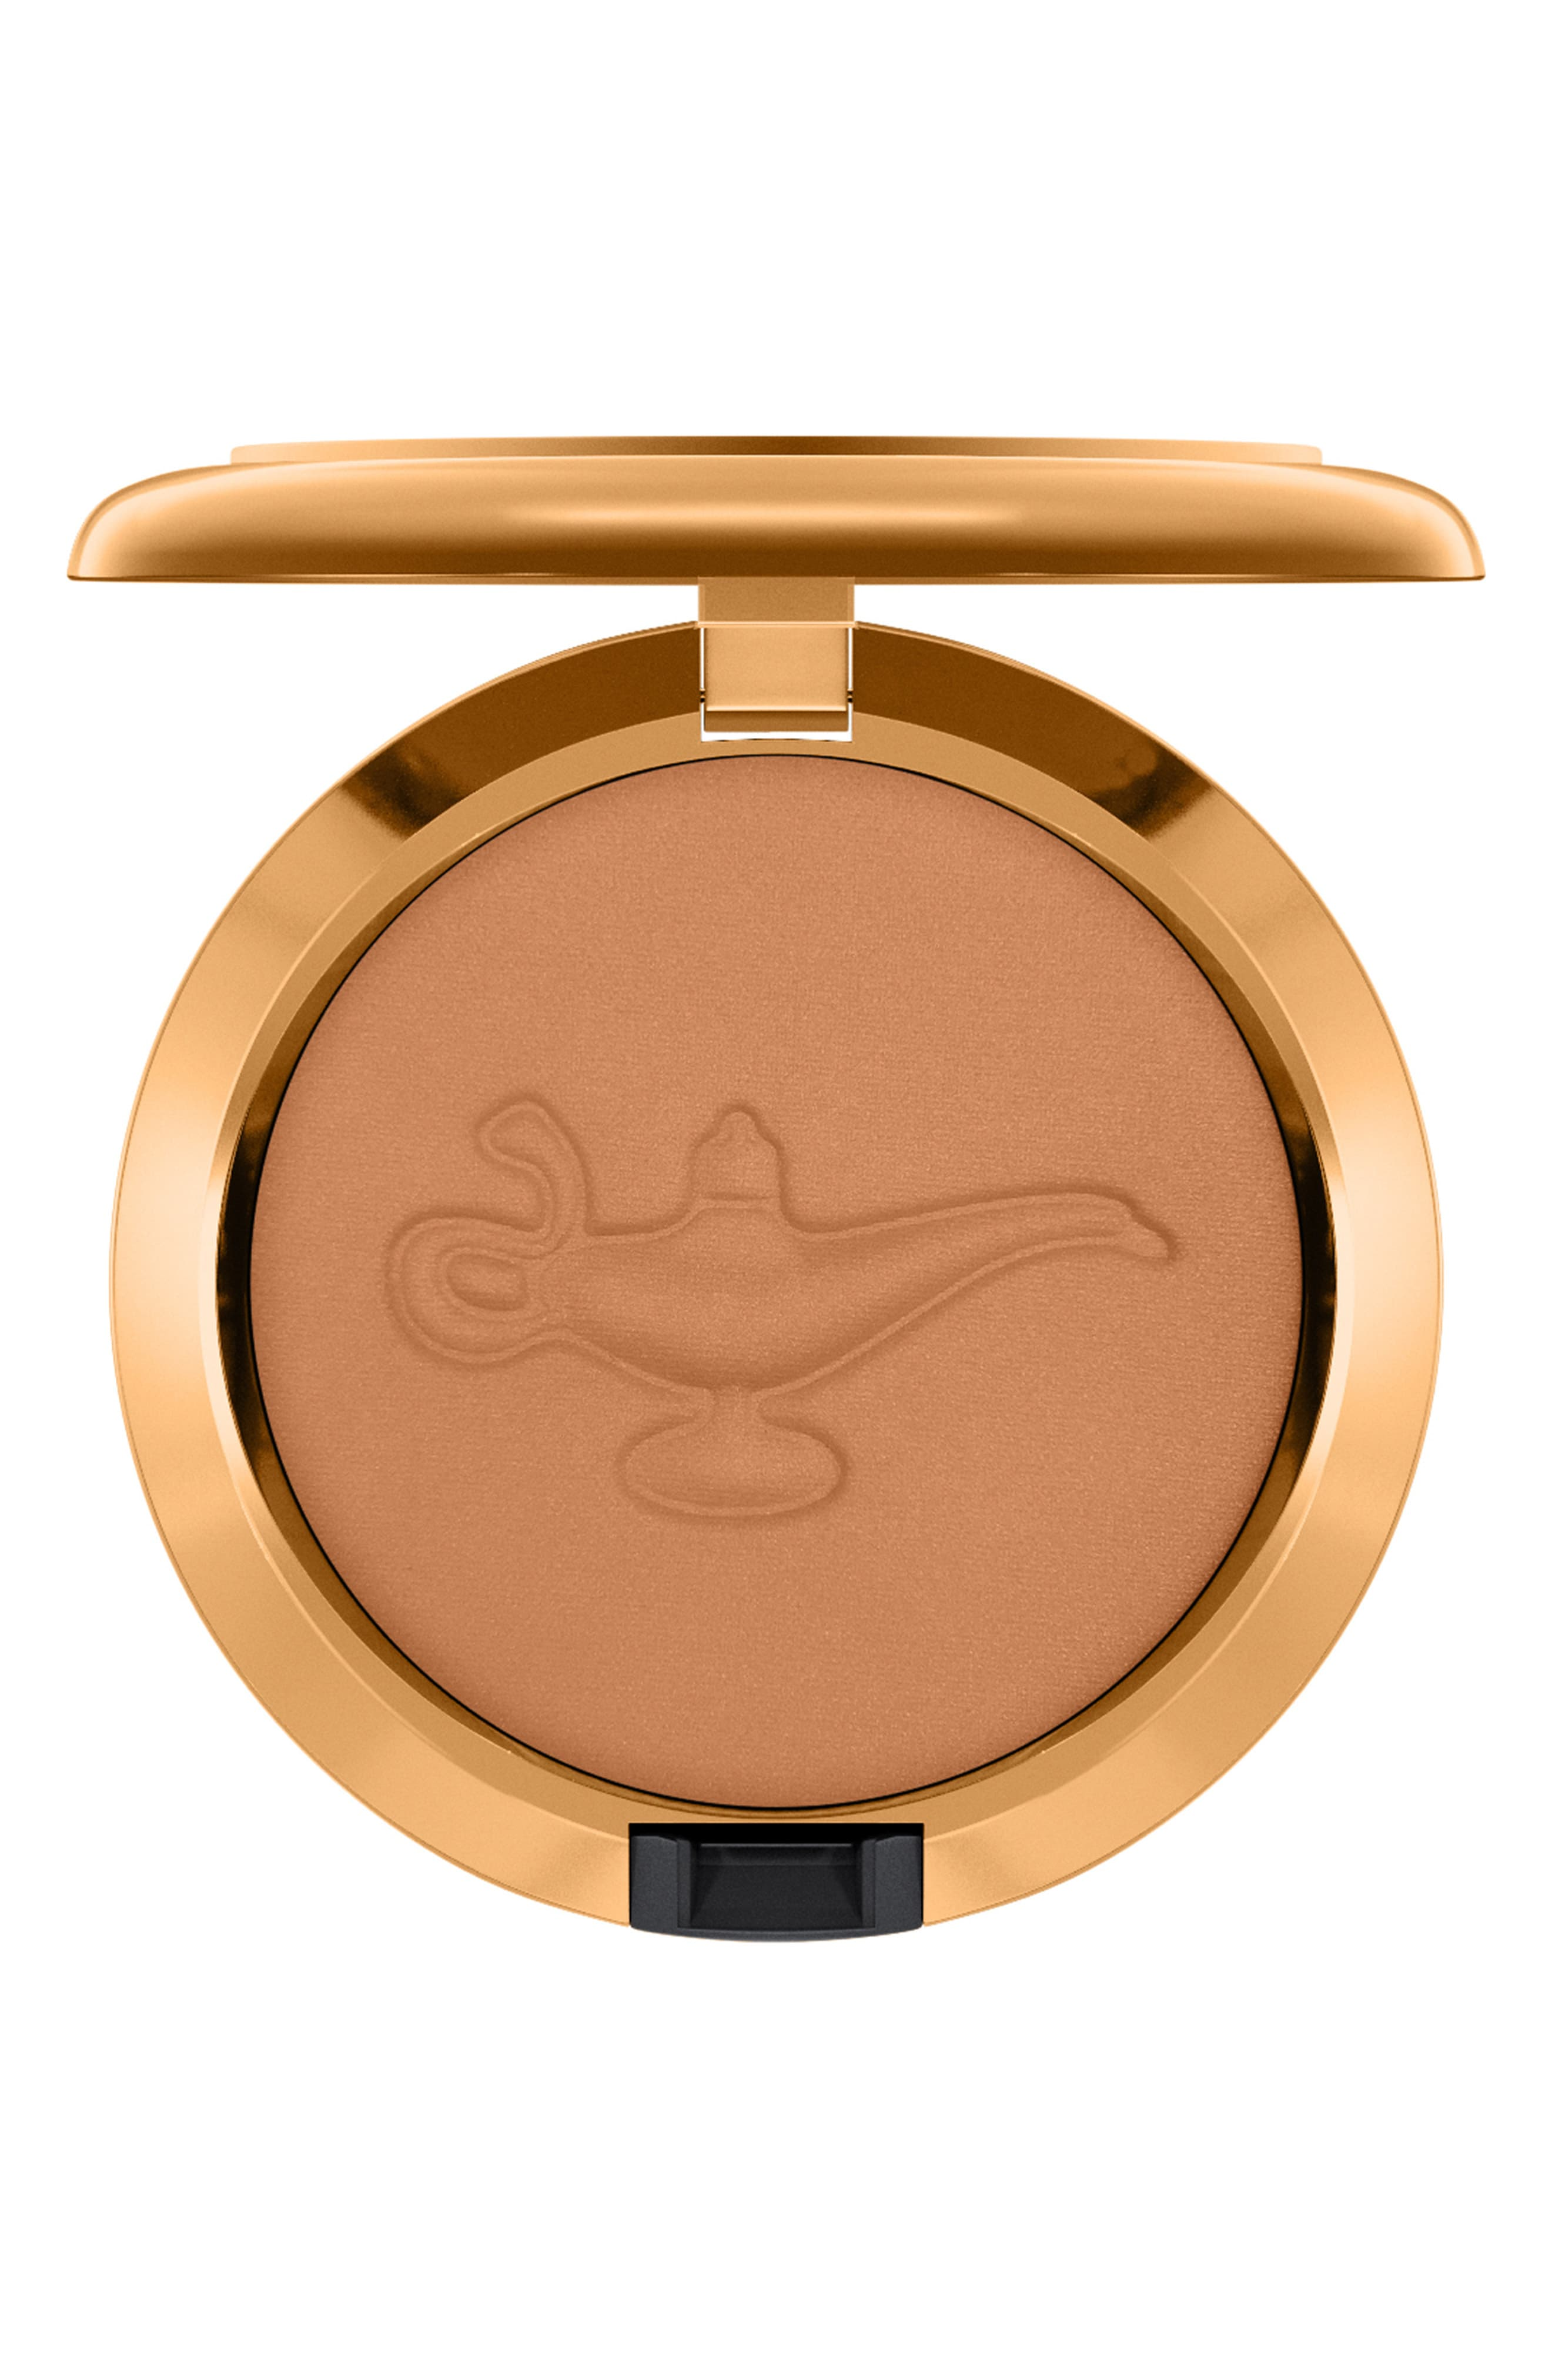 MAC Disney Aladdin Powder Blush